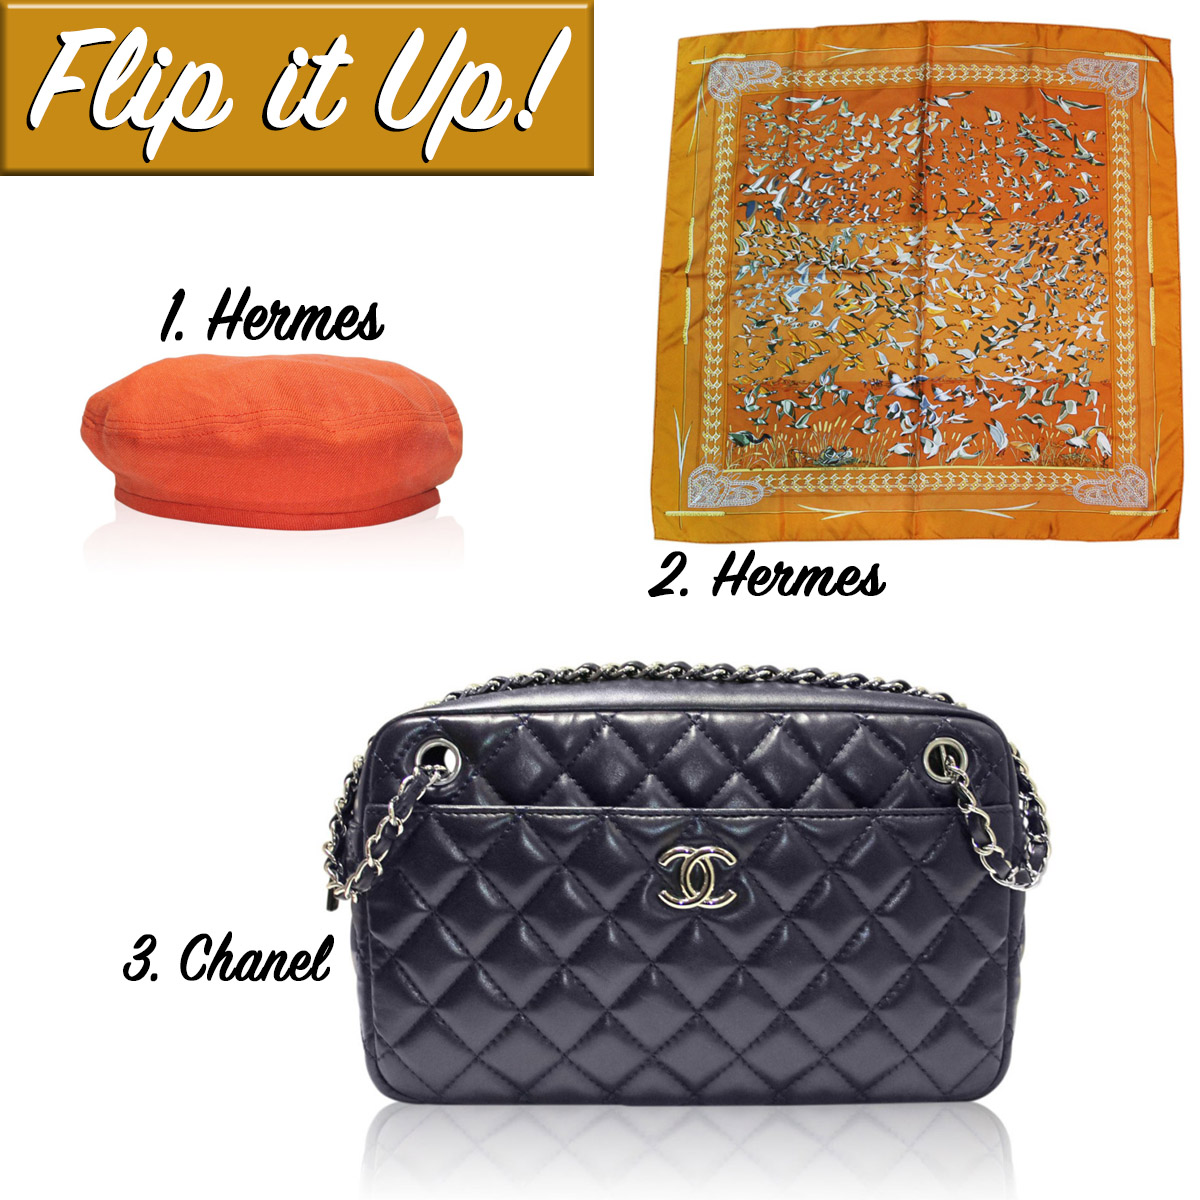 Chanel No. 12 Camera Bag Hermes Scarf and Beret